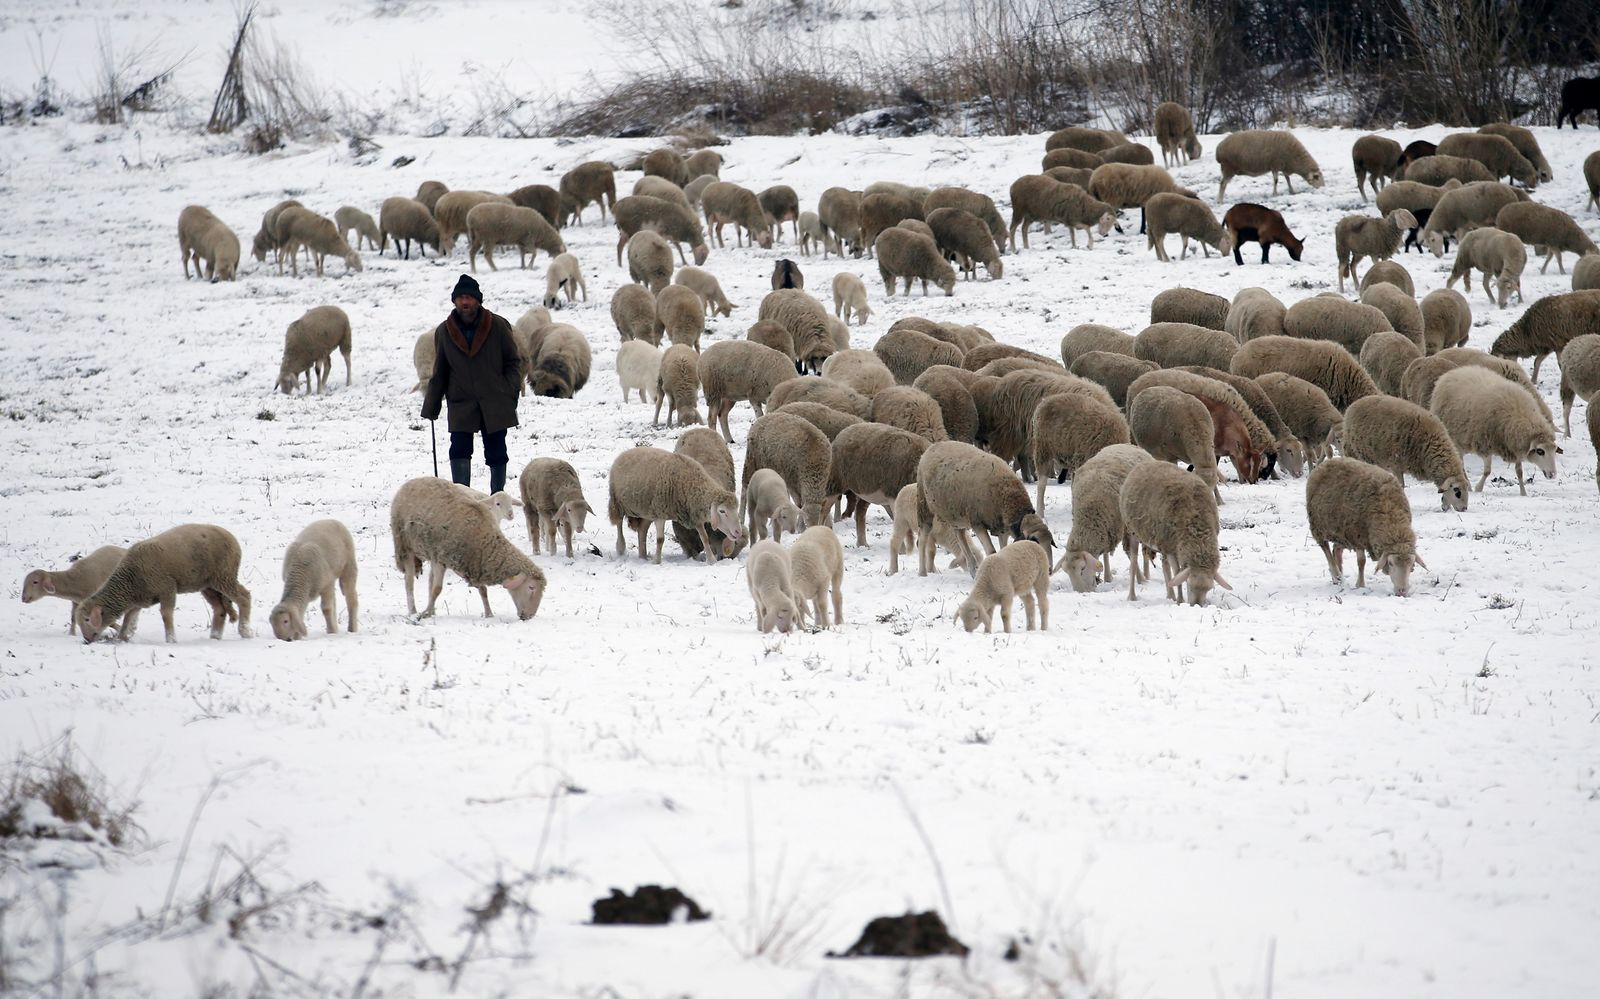 A shepherd leads a herd of sheep over snow-covered meadows near the village Beska, 30 kilometres north of Belgrade, Serbia, Friday, Jan. 11. (AP Photo/Darko Vojinovic)